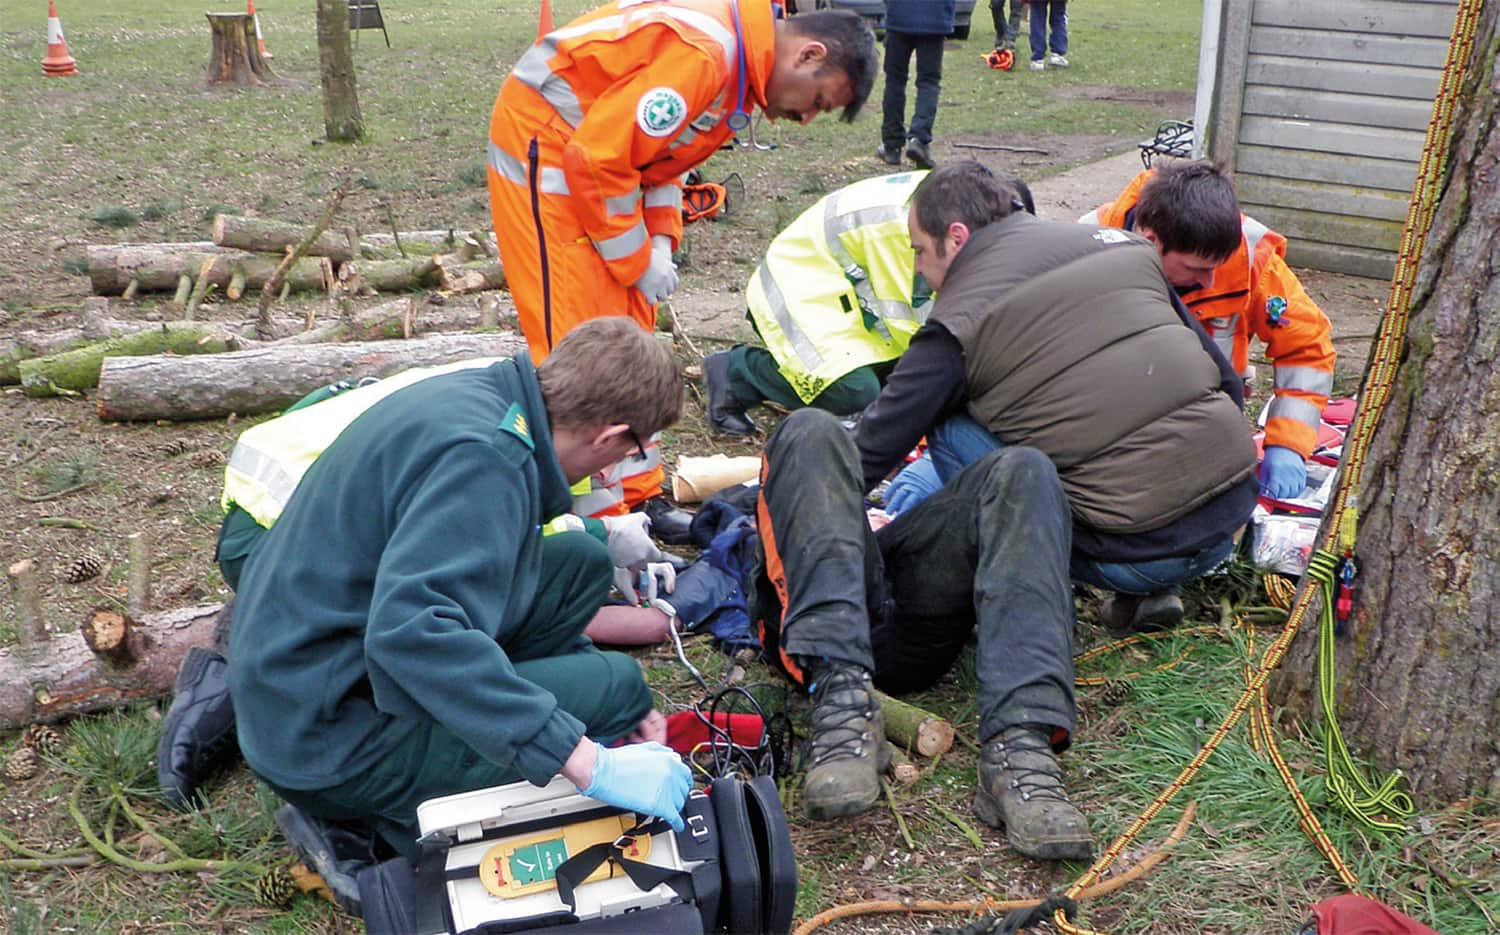 First Aid being administered to an injured arborist